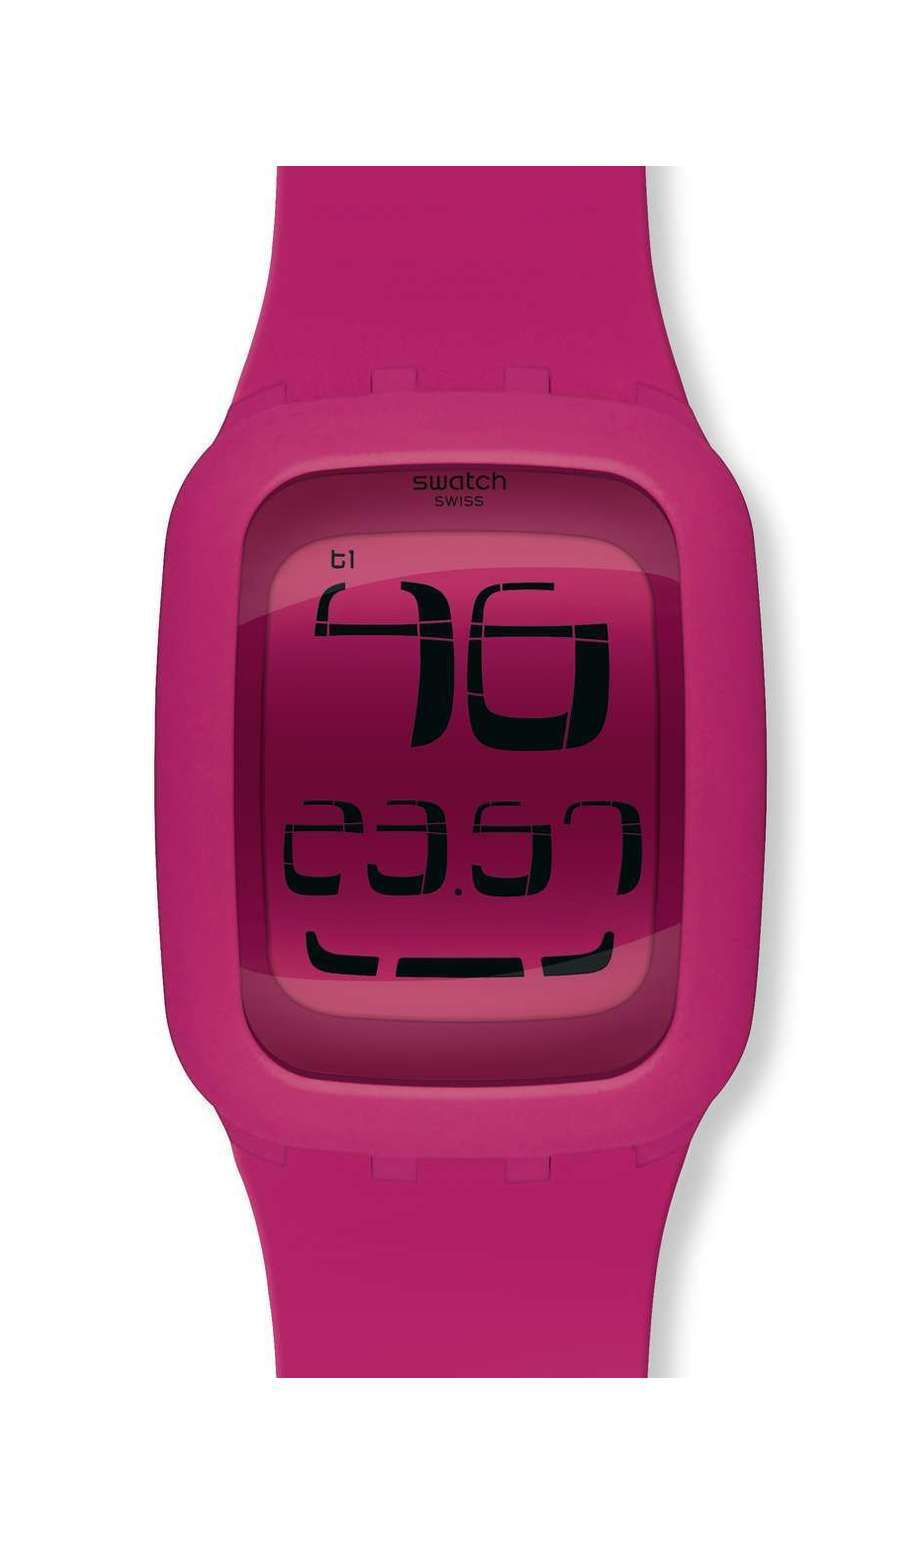 Swatch - SWATCH TOUCH PINK - 1